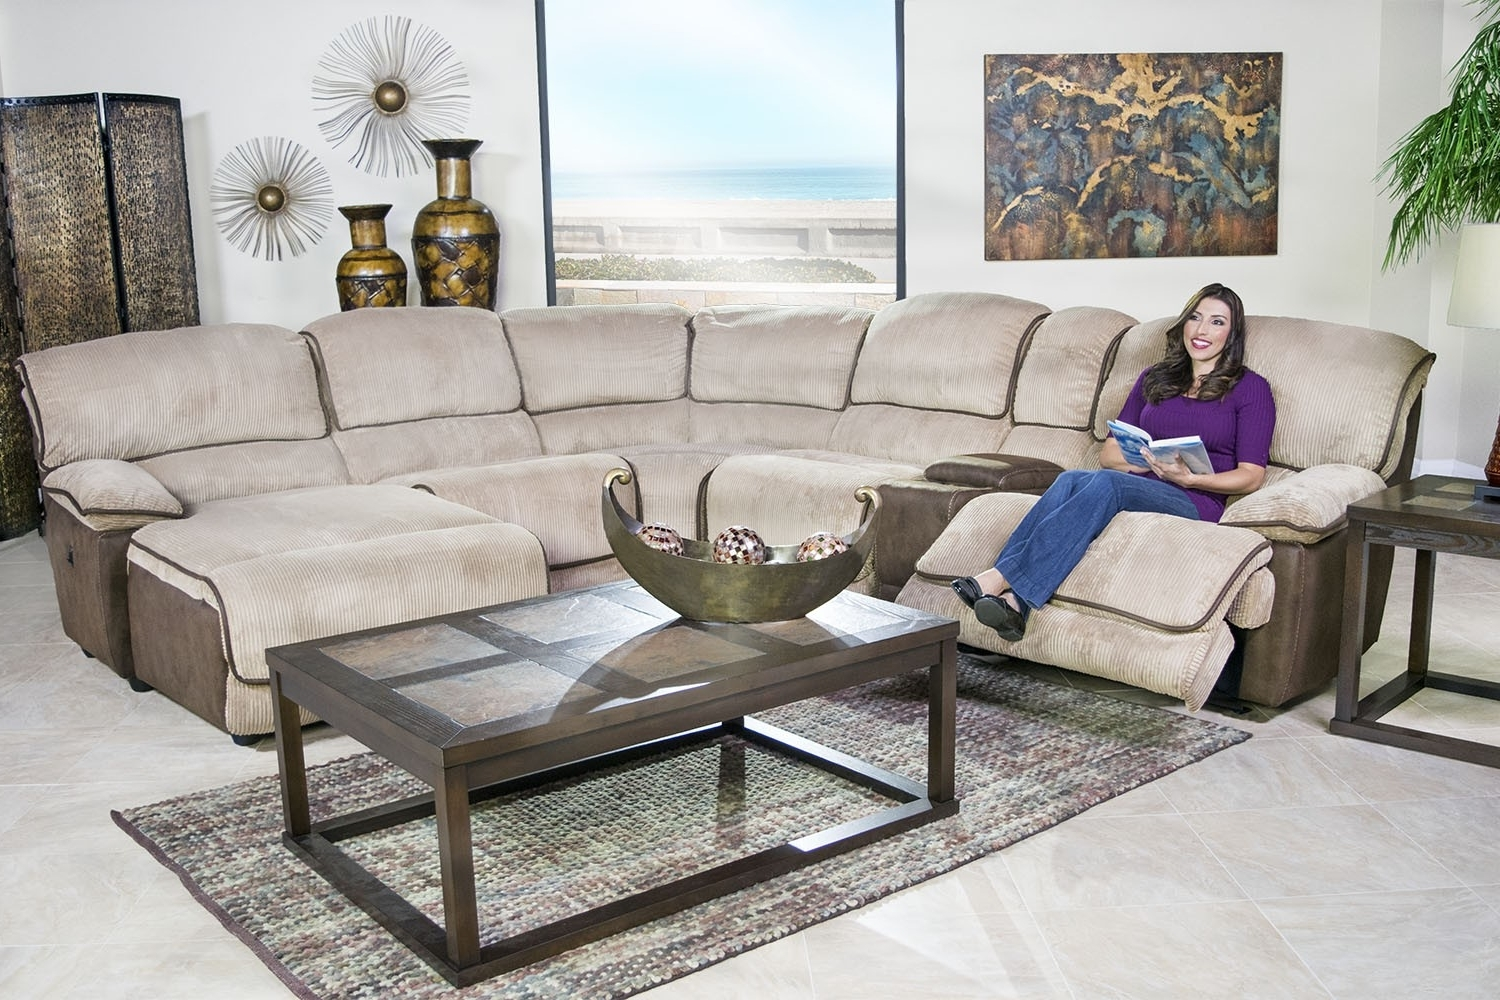 Most Recent Mor Furniture Phoenix Az – Home Design Ideas And Pictures Pertaining To Phoenix Arizona Sectional Sofas (View 10 of 20)